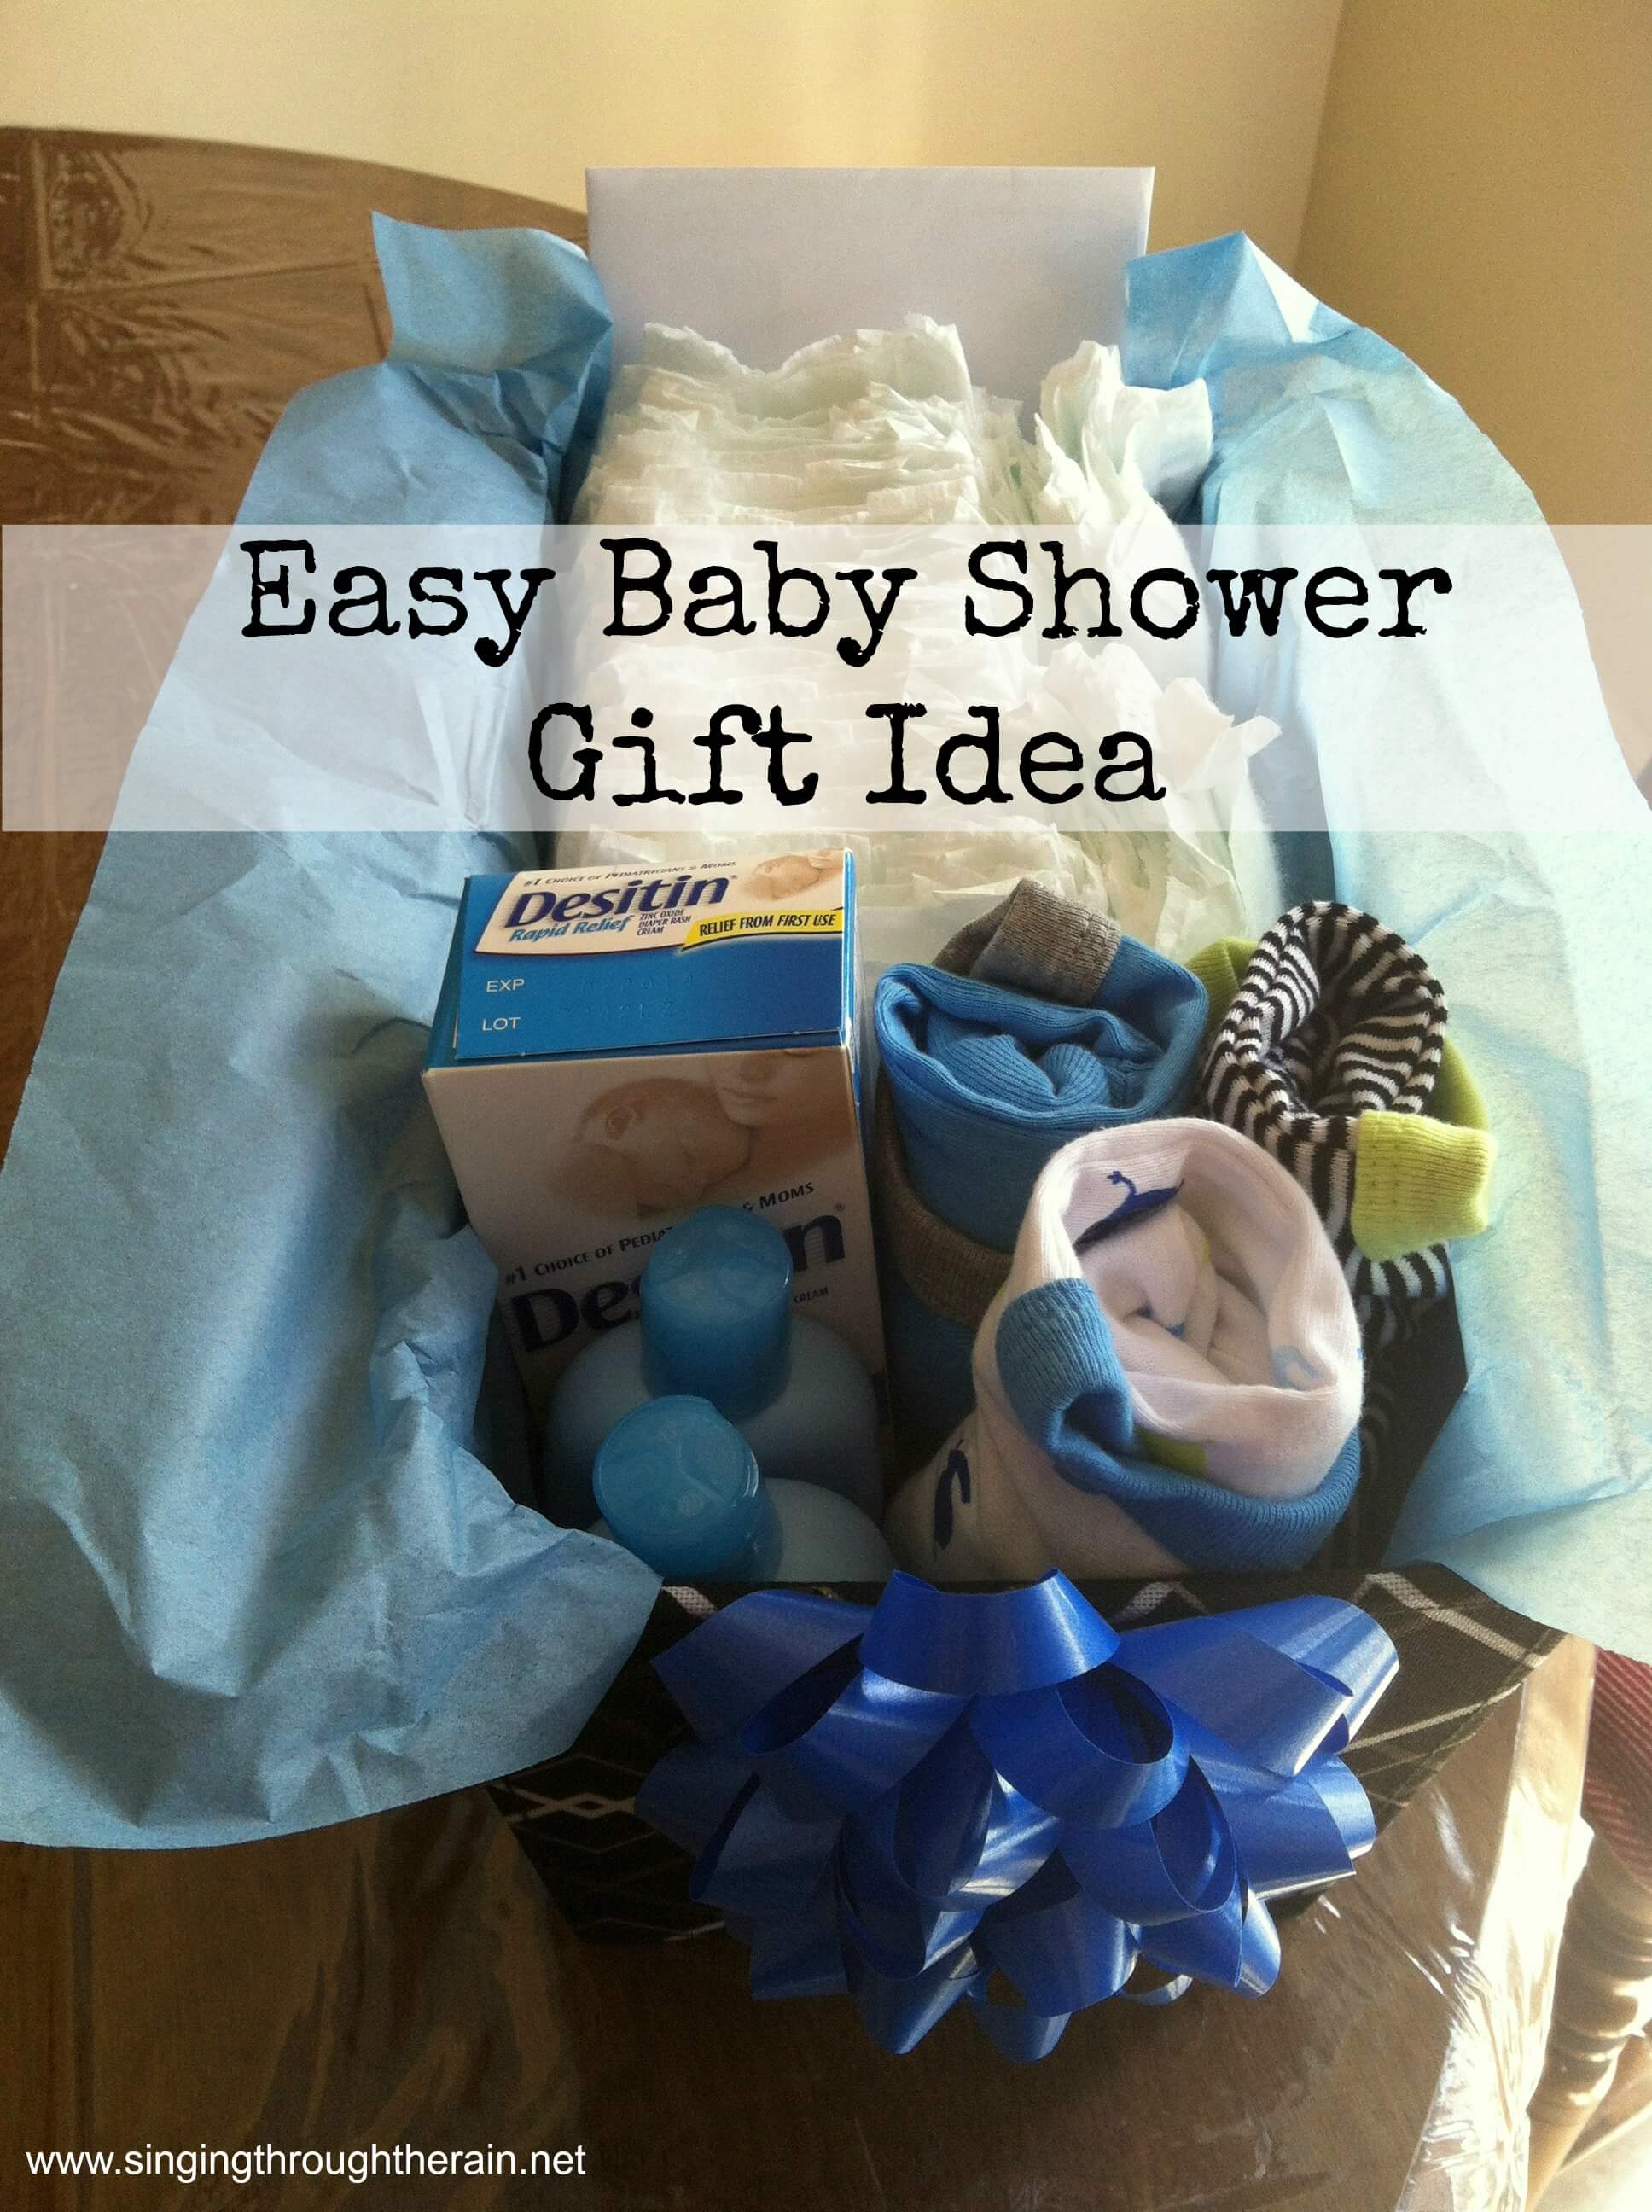 Baby Gift Ideas Make Easy Shower Idea Singing Through The Rain